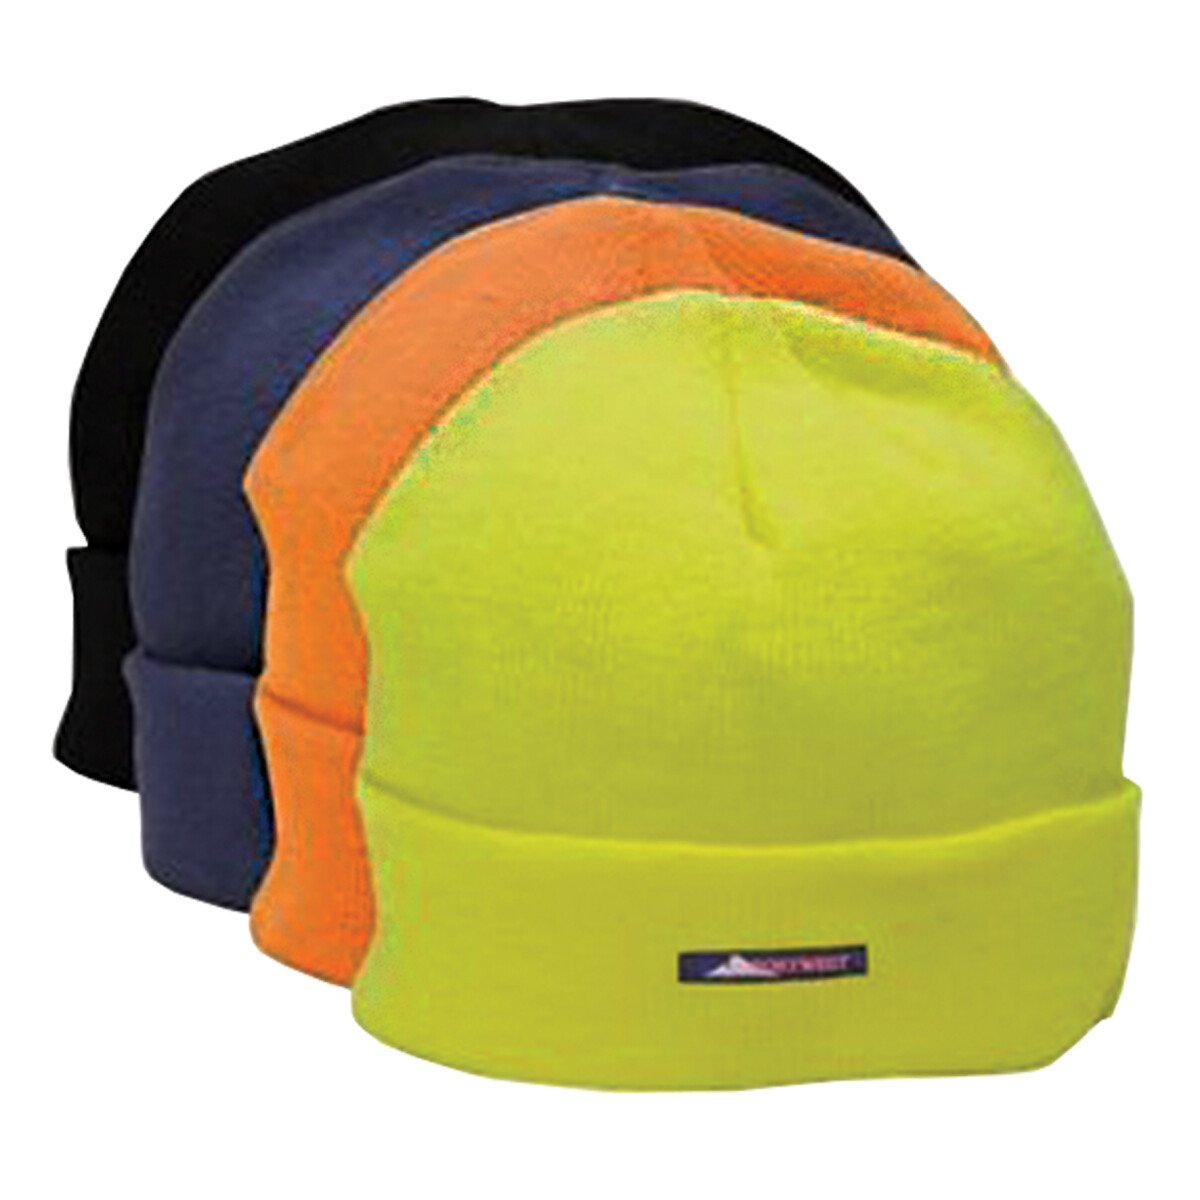 Portwest B013 Insulated Knit Cap Thinsulate Lined Insulatex Lined - Various Colours Available